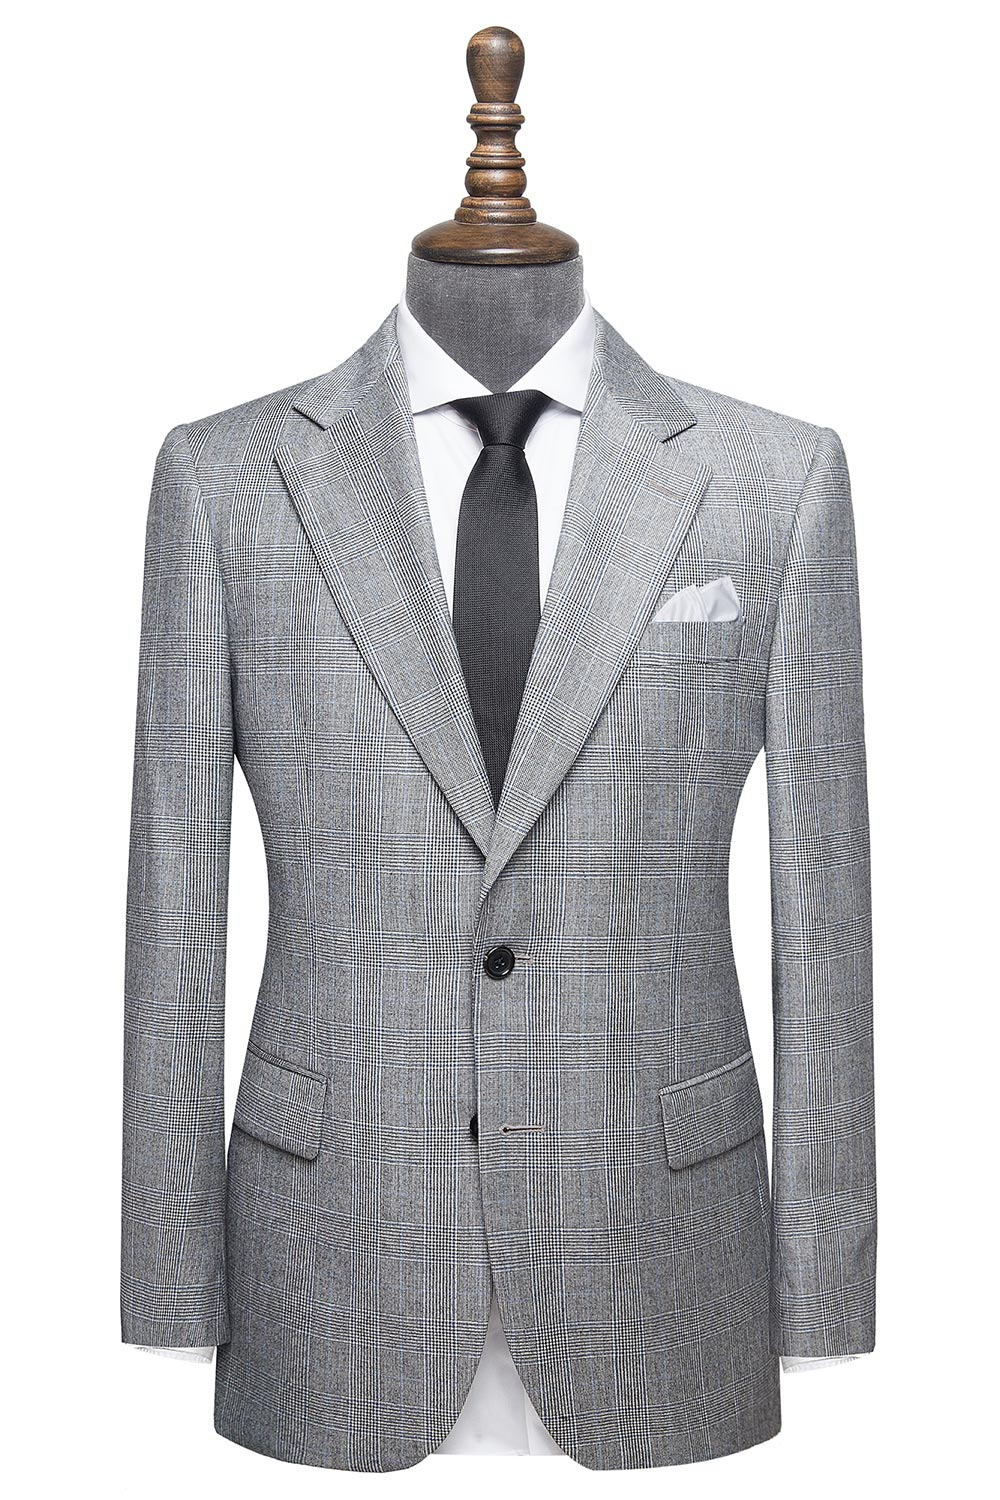 The Stafford Grey And Blue Glenplaid Everyday Suit Men S